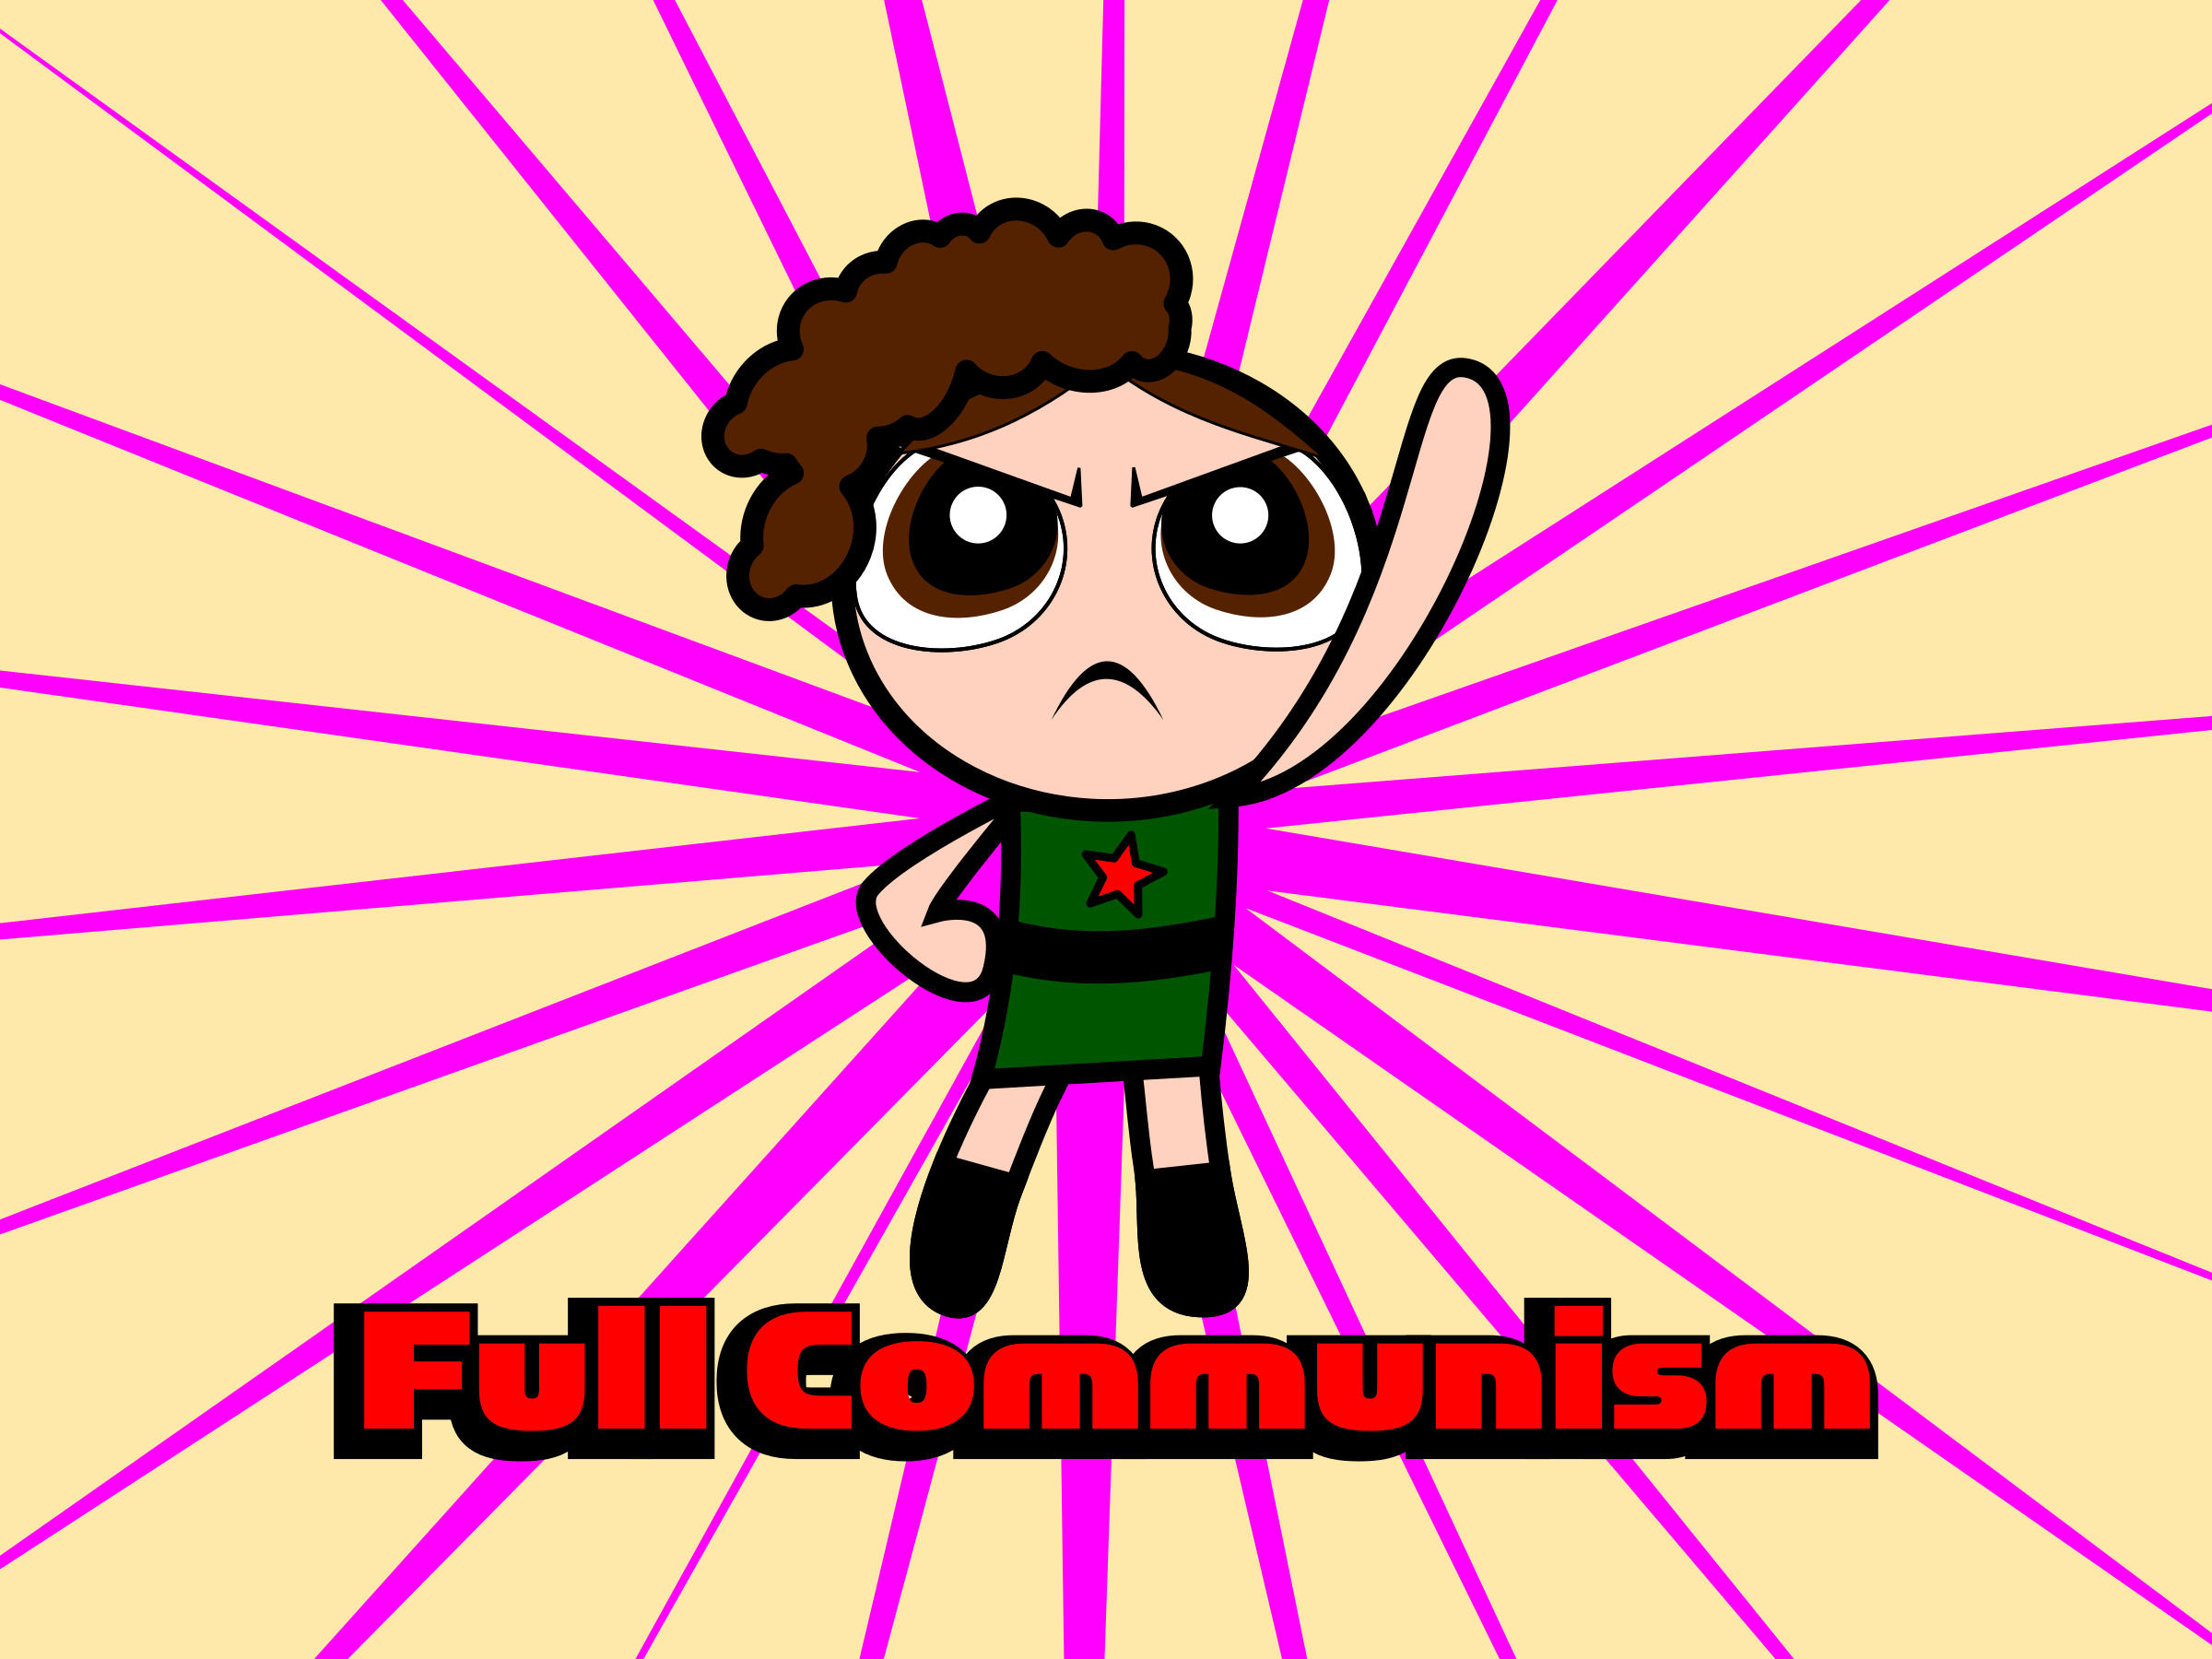 Full Communism by argumento